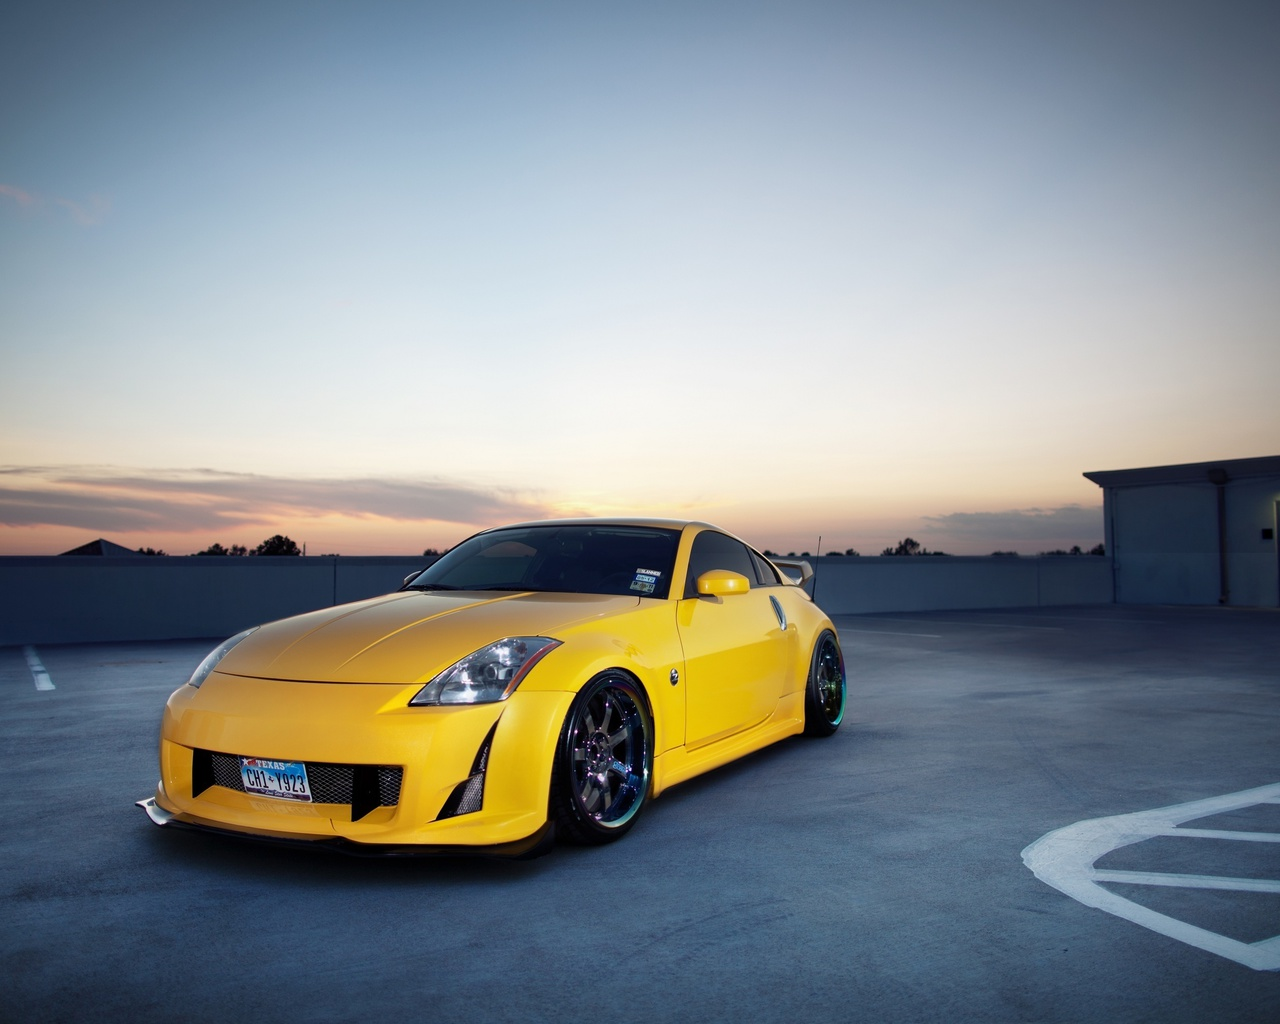 Auto, tuning, photo, nissan, wallpapers auto, tuning auto, city, nissan 350z, parking, cars, 350z